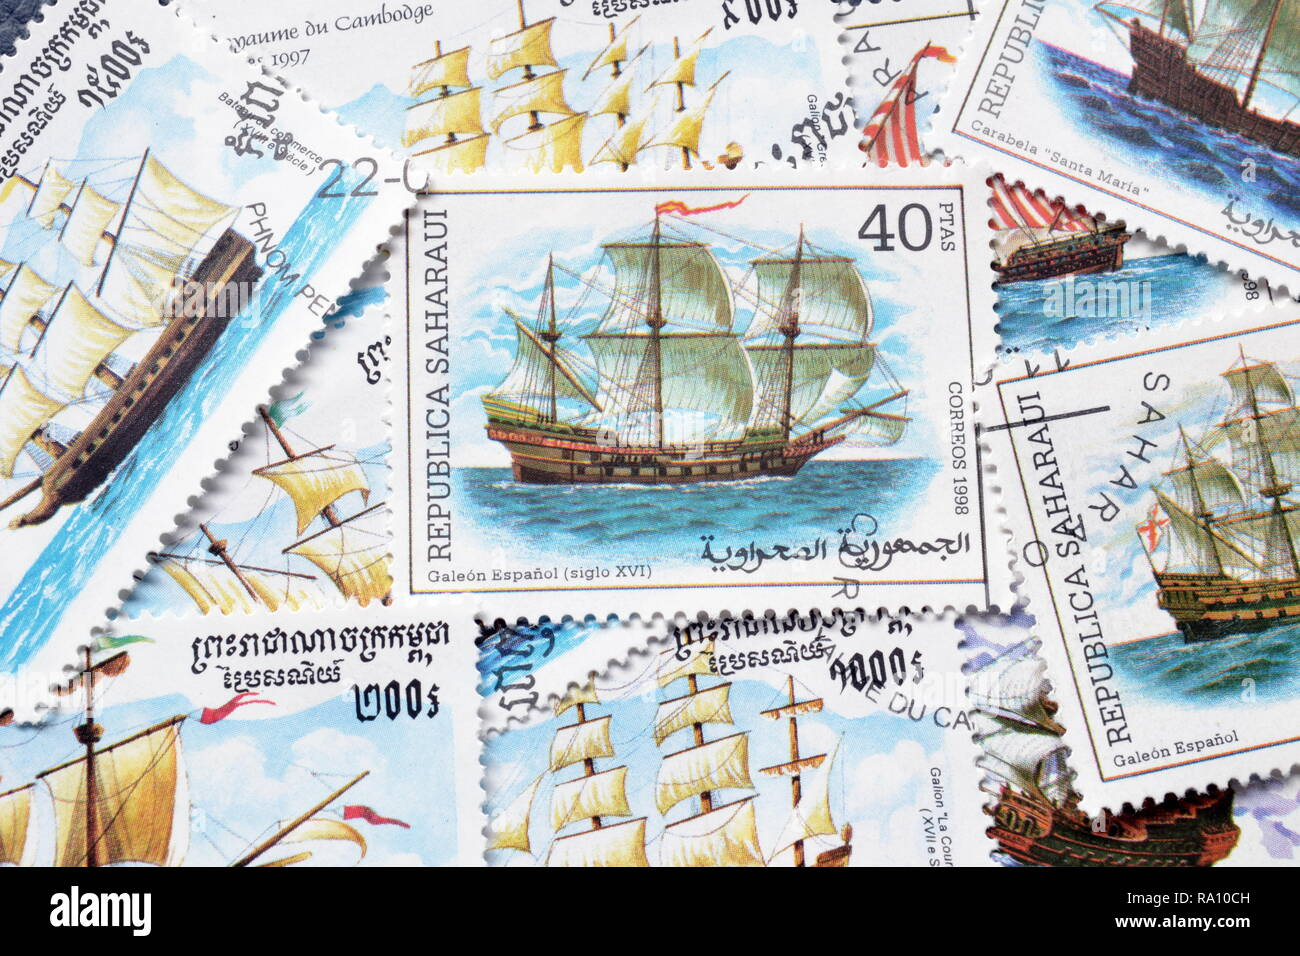 Cancelled postage stamps printed by Republic Sahrawi and Cambodia, that showsancient sailing ships. - Stock Image